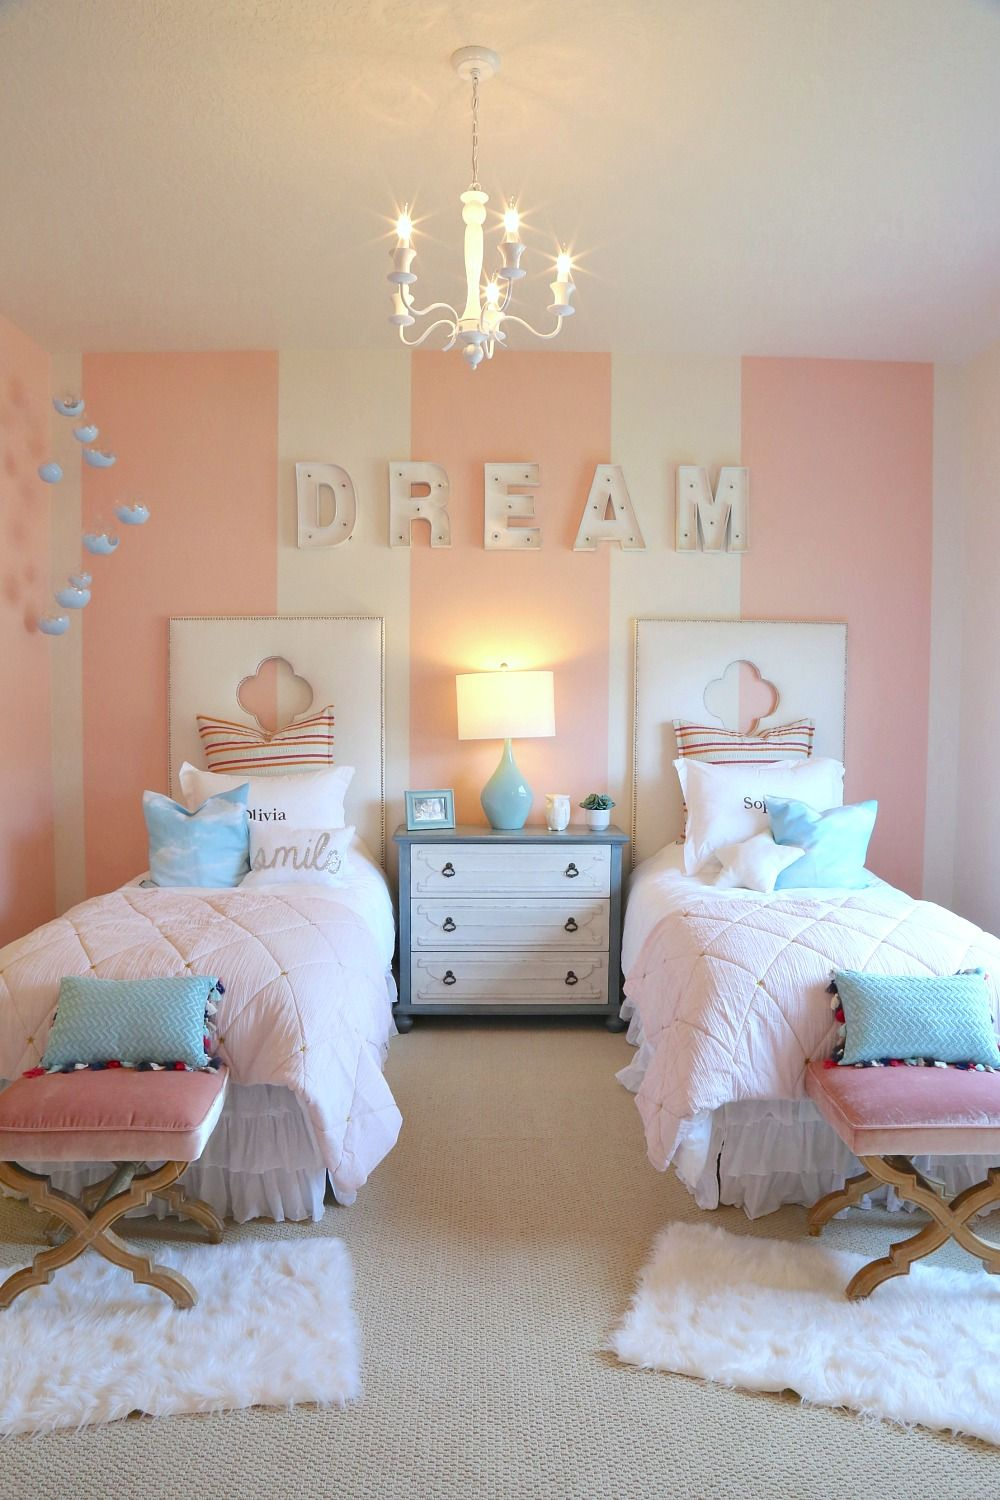 Best Creative Kids Bedroom Decorating Ideas Room Decor Twin 400 x 300